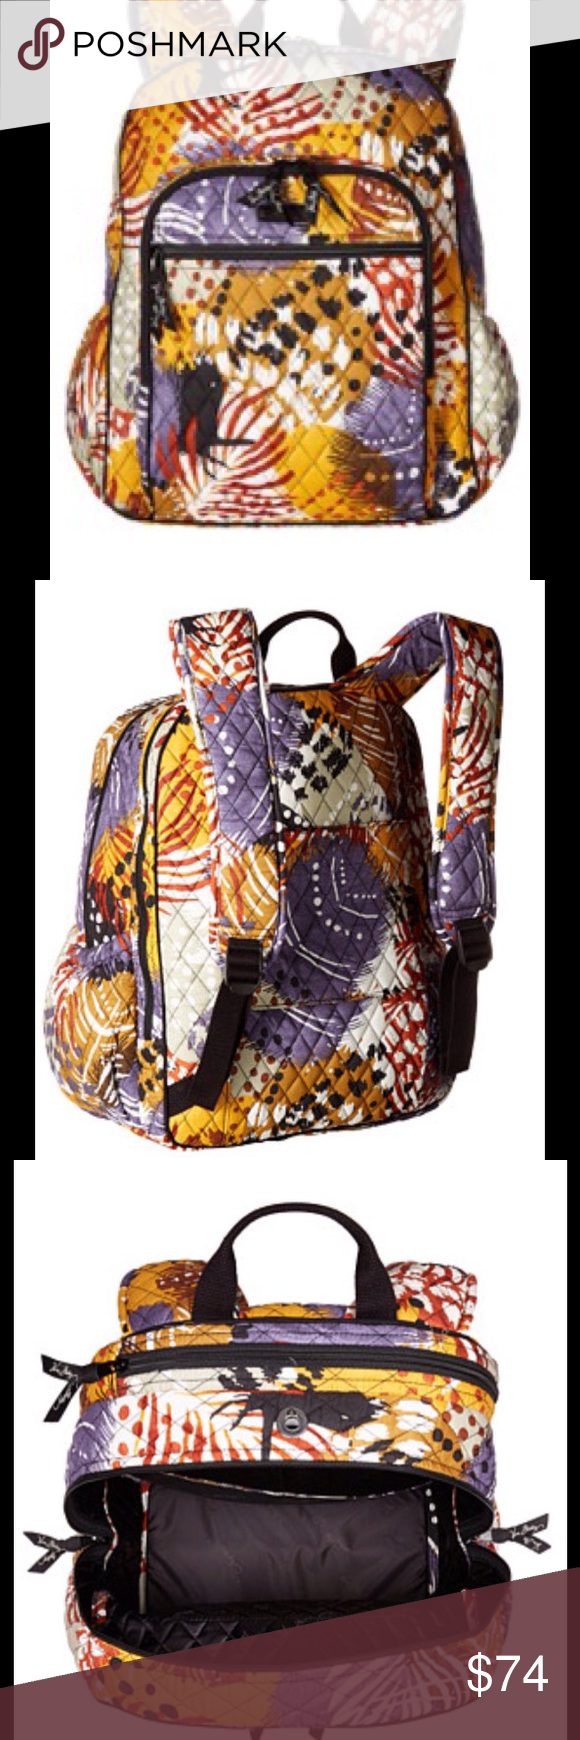 "Vera Bradley backpack Man made material. Top carrying handle with dual adjustable shoulder straps . Three exterior front zip pockets. Two exterior slip pockets . Flat bottom, lined interior . Bottom width 11"", middle width 12"", top width 11"" , depth 7.5"", height 16"", strap length 28"", strap drop 12"", handle length 8"", handle drop 3"", weight 1lb. 8oz. Vera Bradley Bags Backpacks"